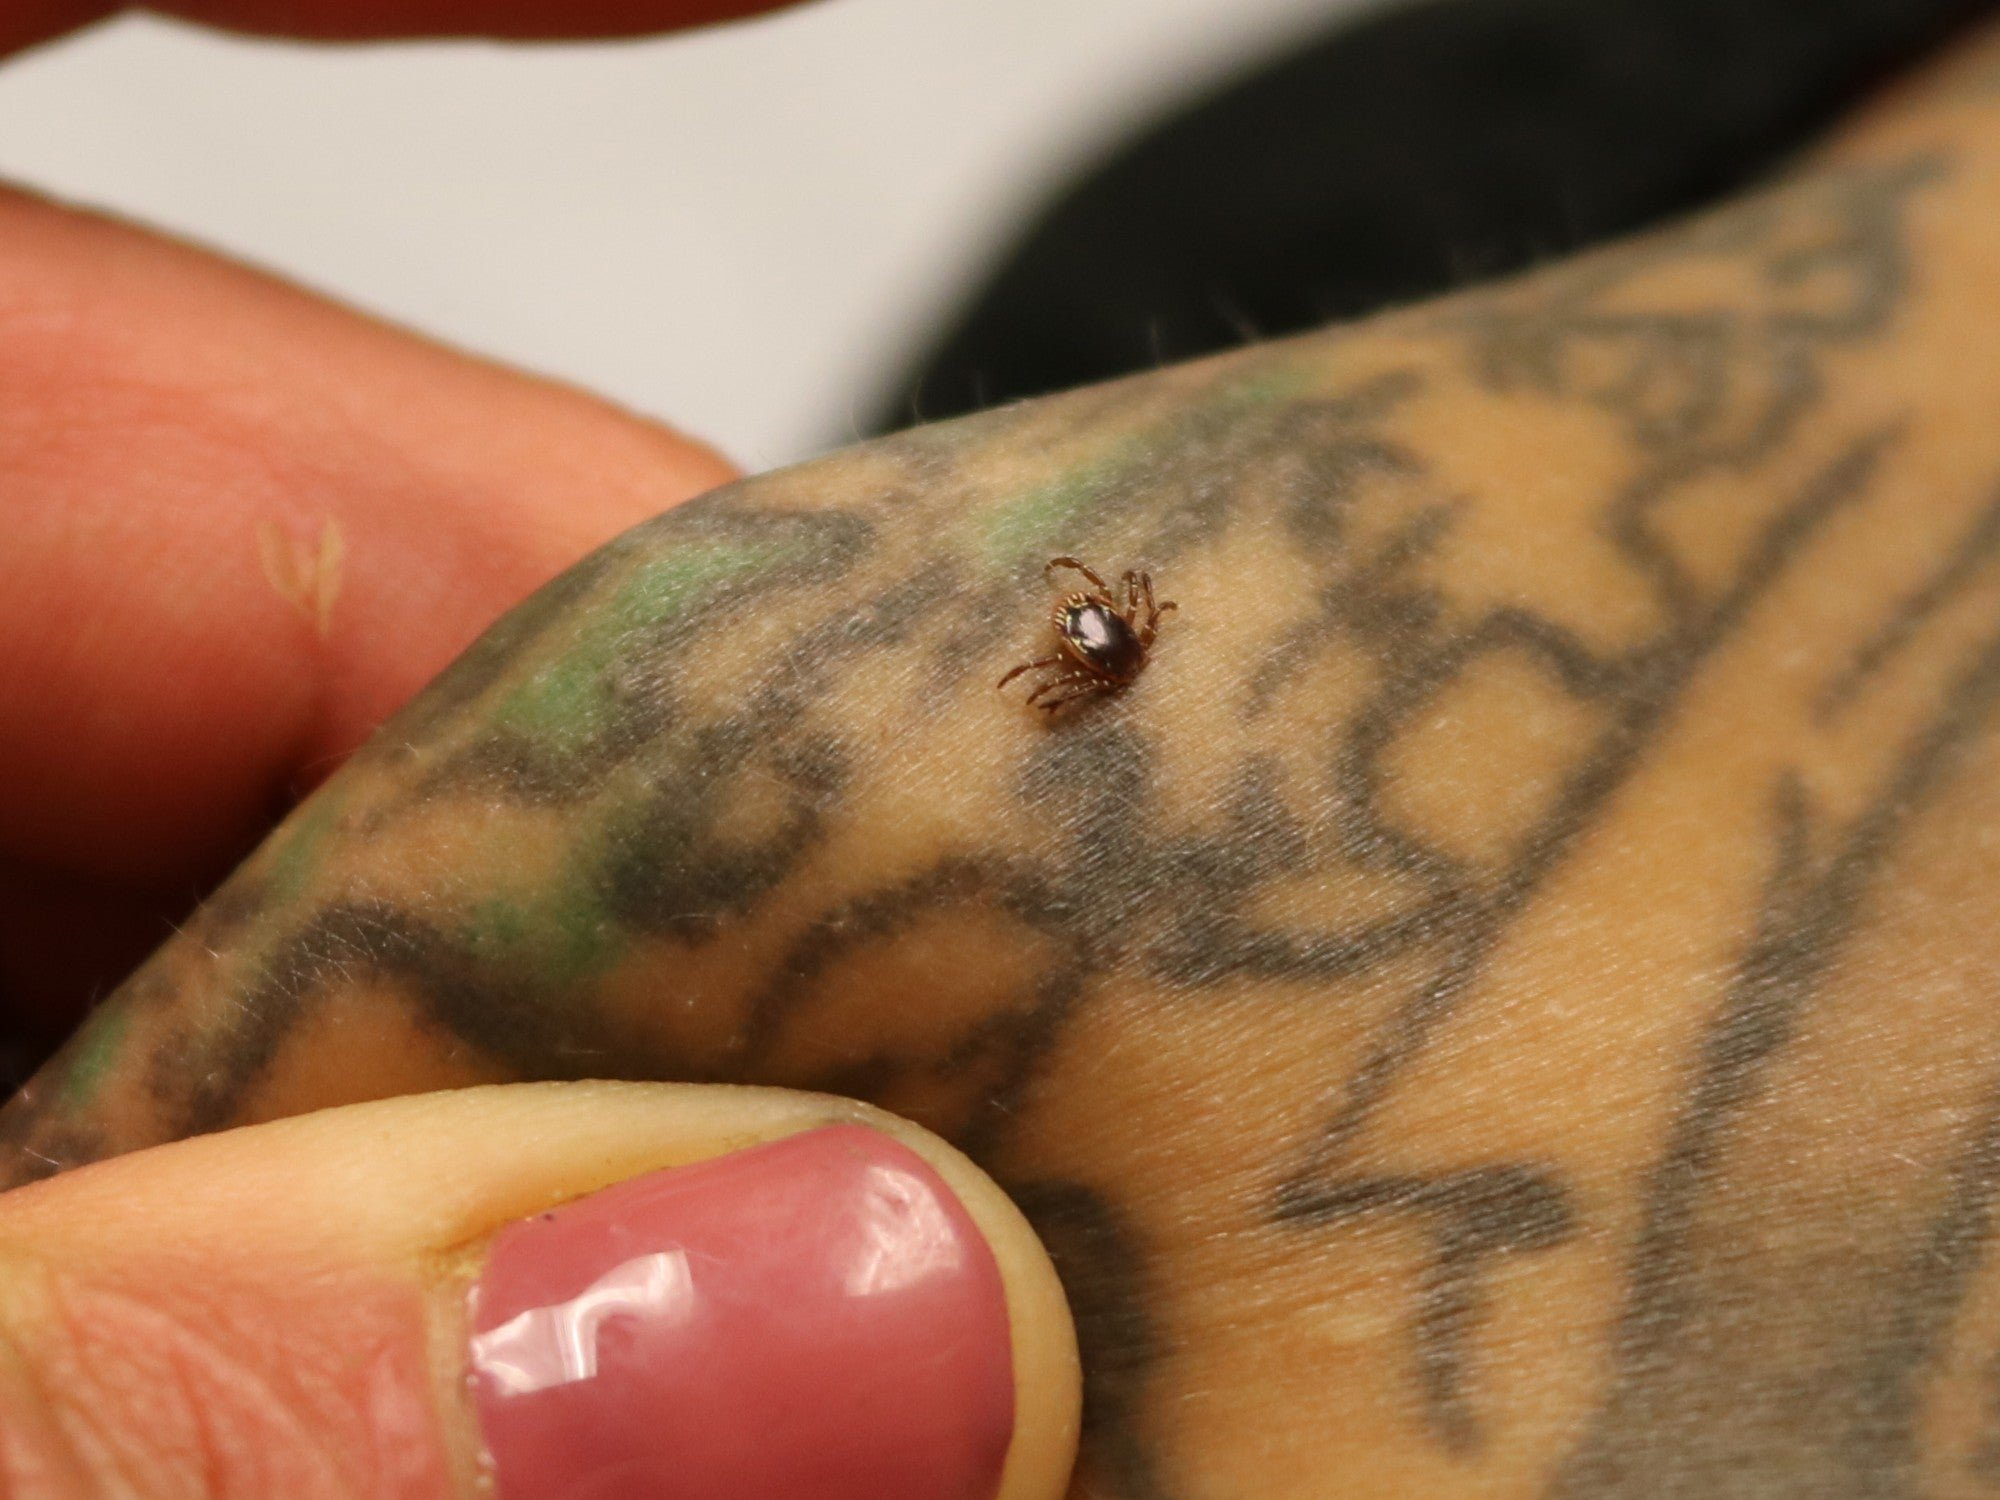 Ticks that cause red meat allergies are spreading, and invasive fire ants may be our best hope